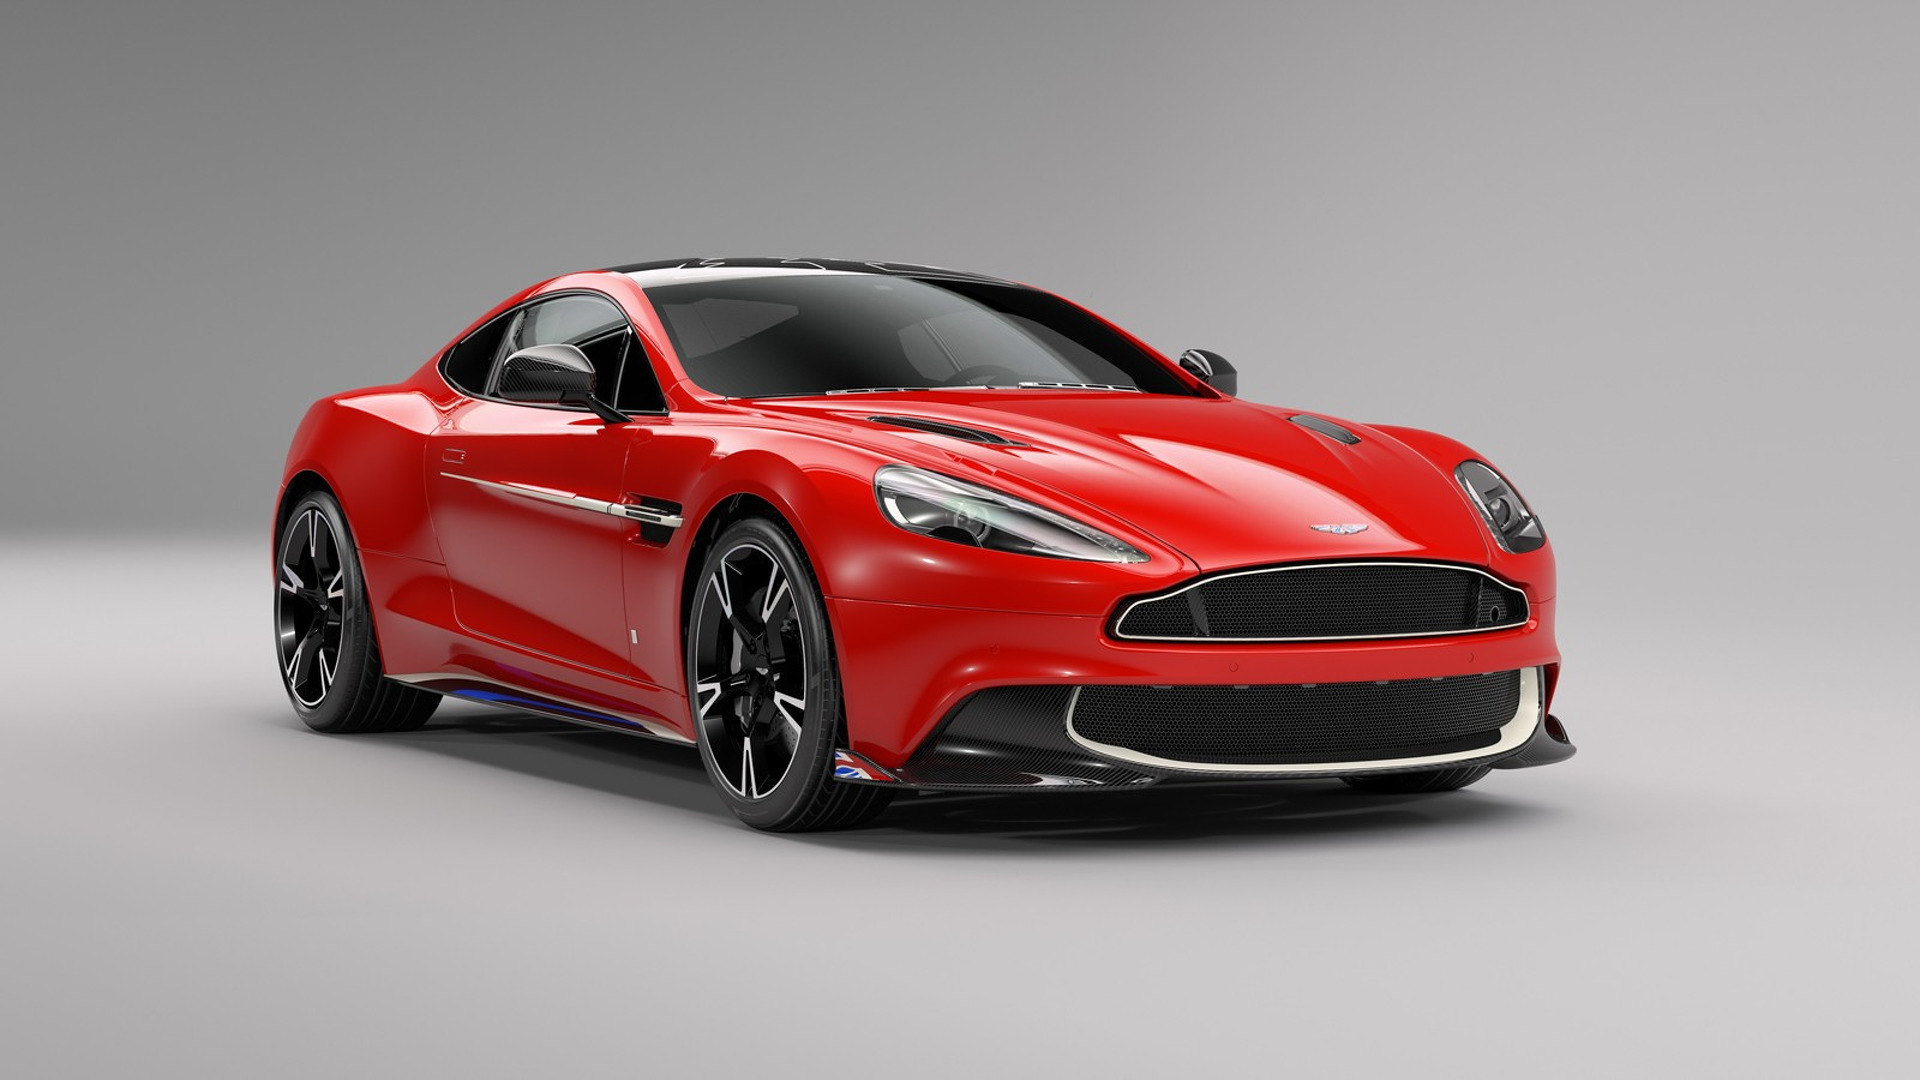 Aston Martin Vanquish S Red Arrows Edition (1)